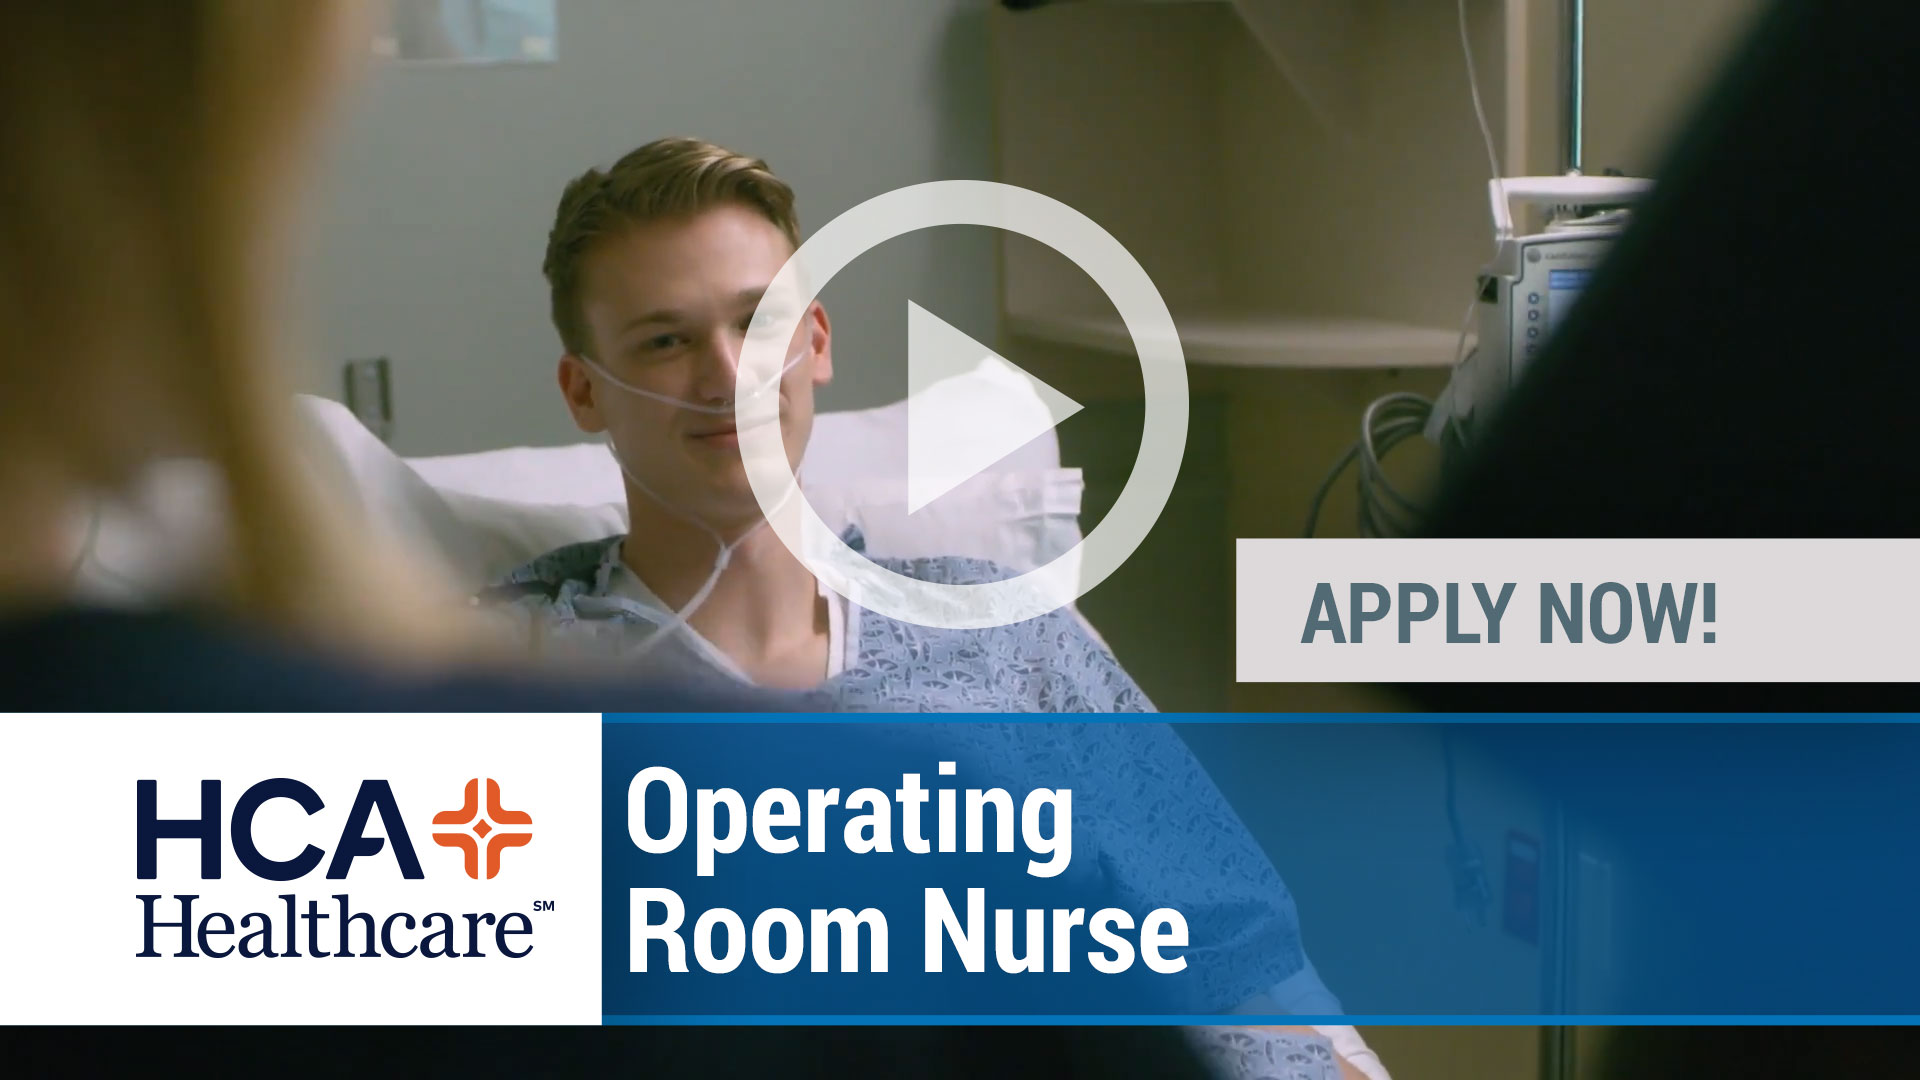 Watch our careers video for available job opening Operating Room Nurse in Austin, Texas